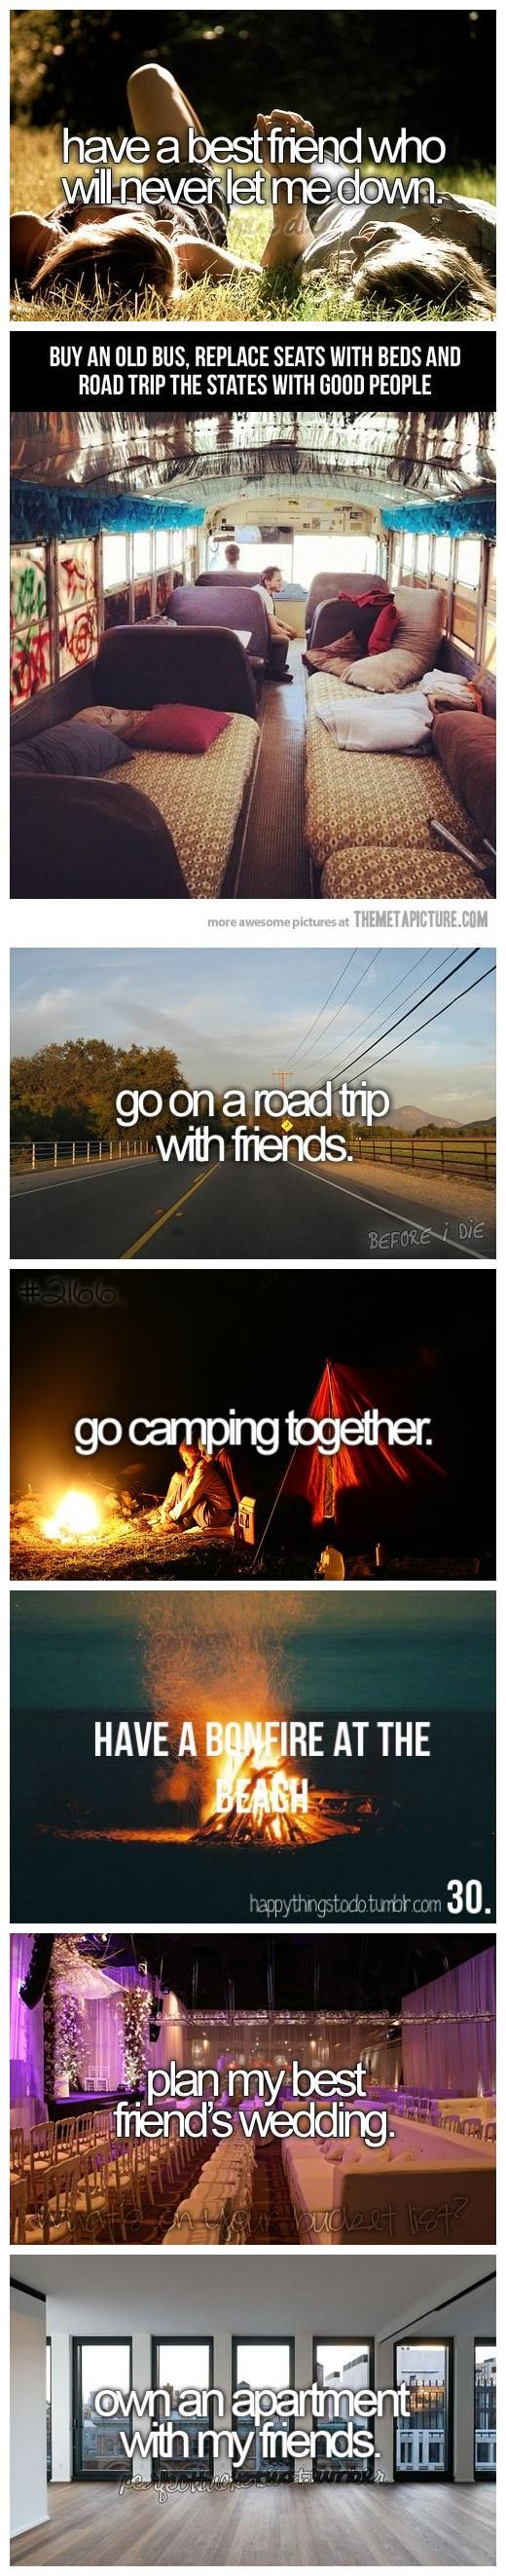 Things to do with my friends I have now...or get later down the road.